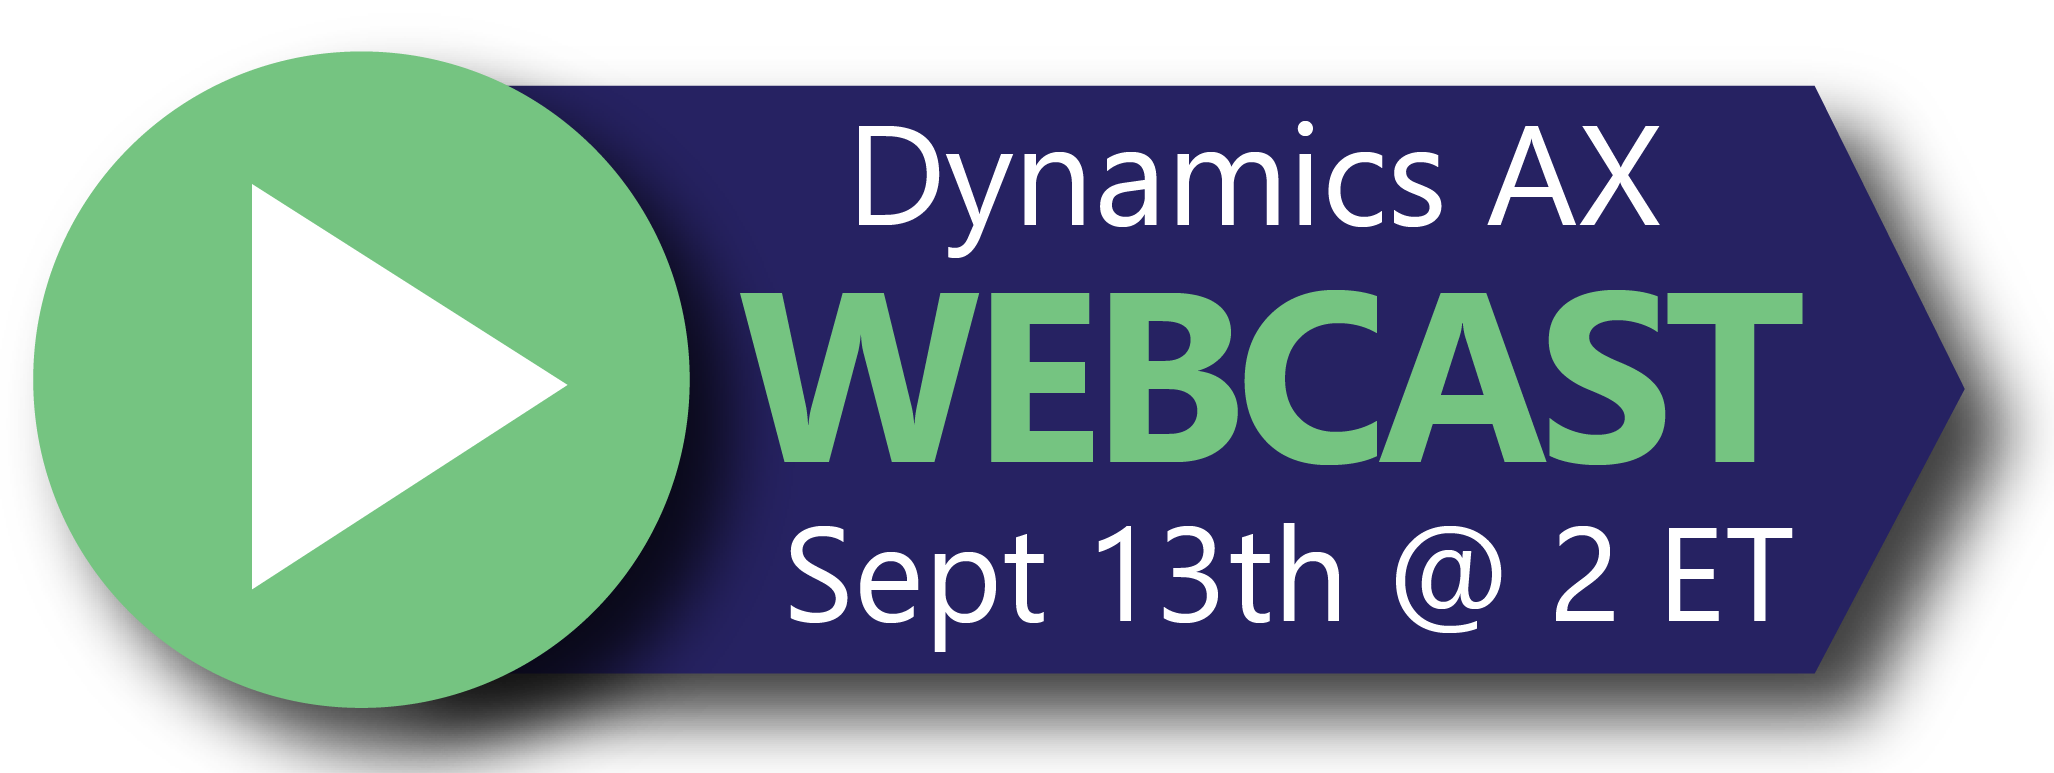 Webcast Registration - Dynamics AX for Professional Services